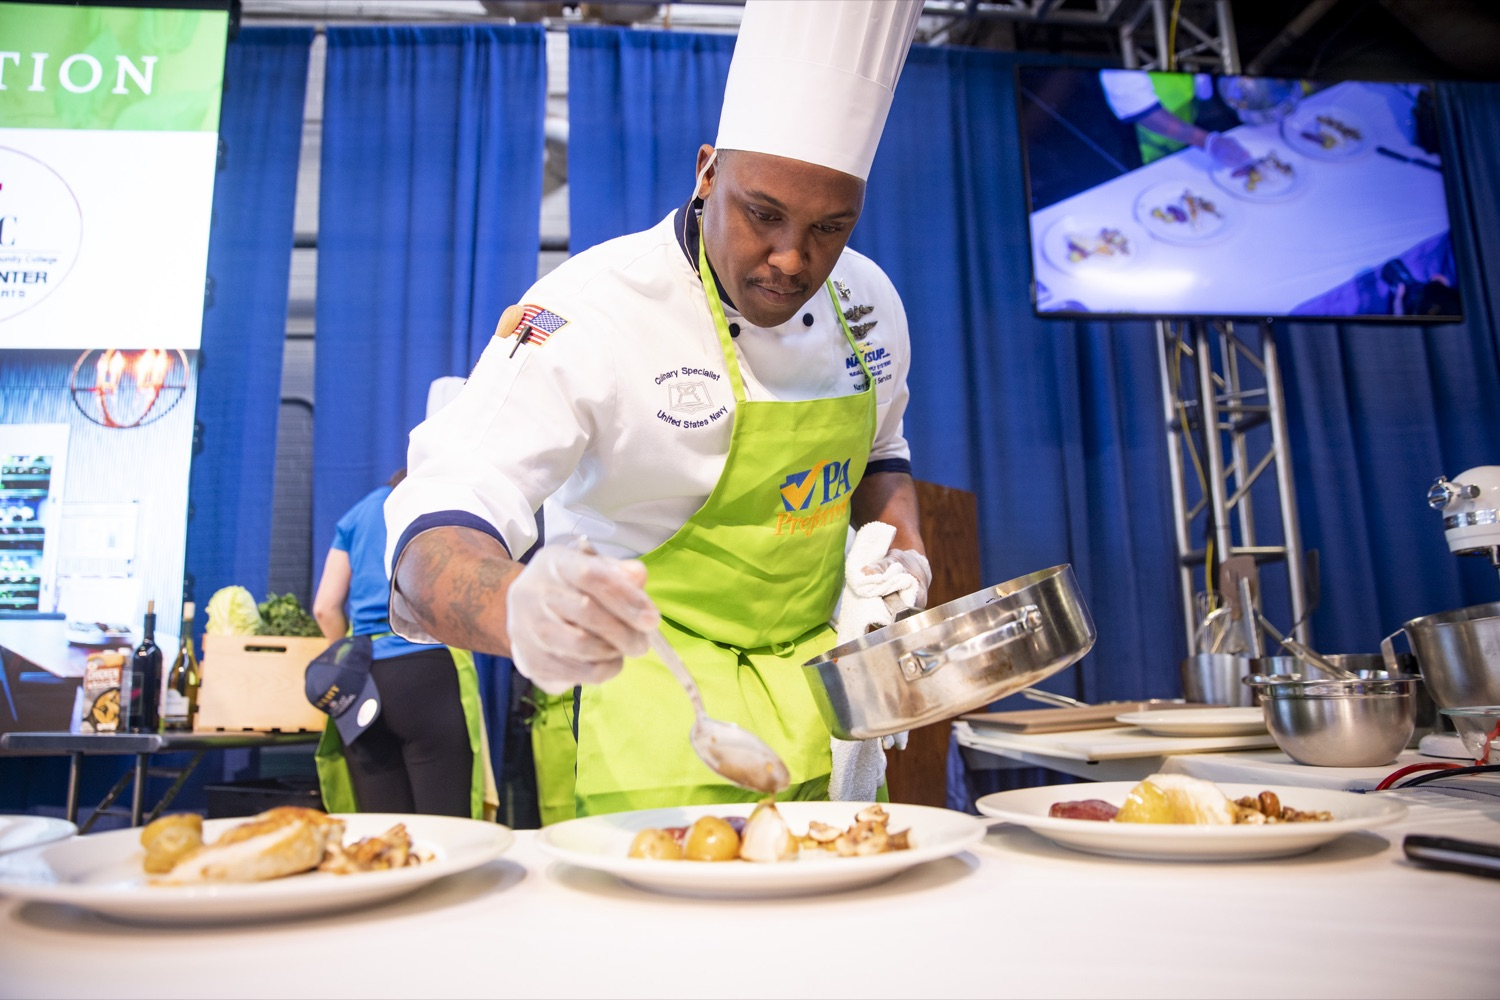 """<a href=""""http://filesource.abacast.com/commonwealthofpa/photo/17651_AGRIC_ARMY_NAVY_COOKOFF_CZ_12.jpg"""" target=""""_blank"""">⇣Download Photo<br></a>Culinary Specialist First Class Marlon ONeil Haughton plates his winning dish at the 2020 Army vs. Navy Cook-Off in Harrisburg on January 9, 2020."""